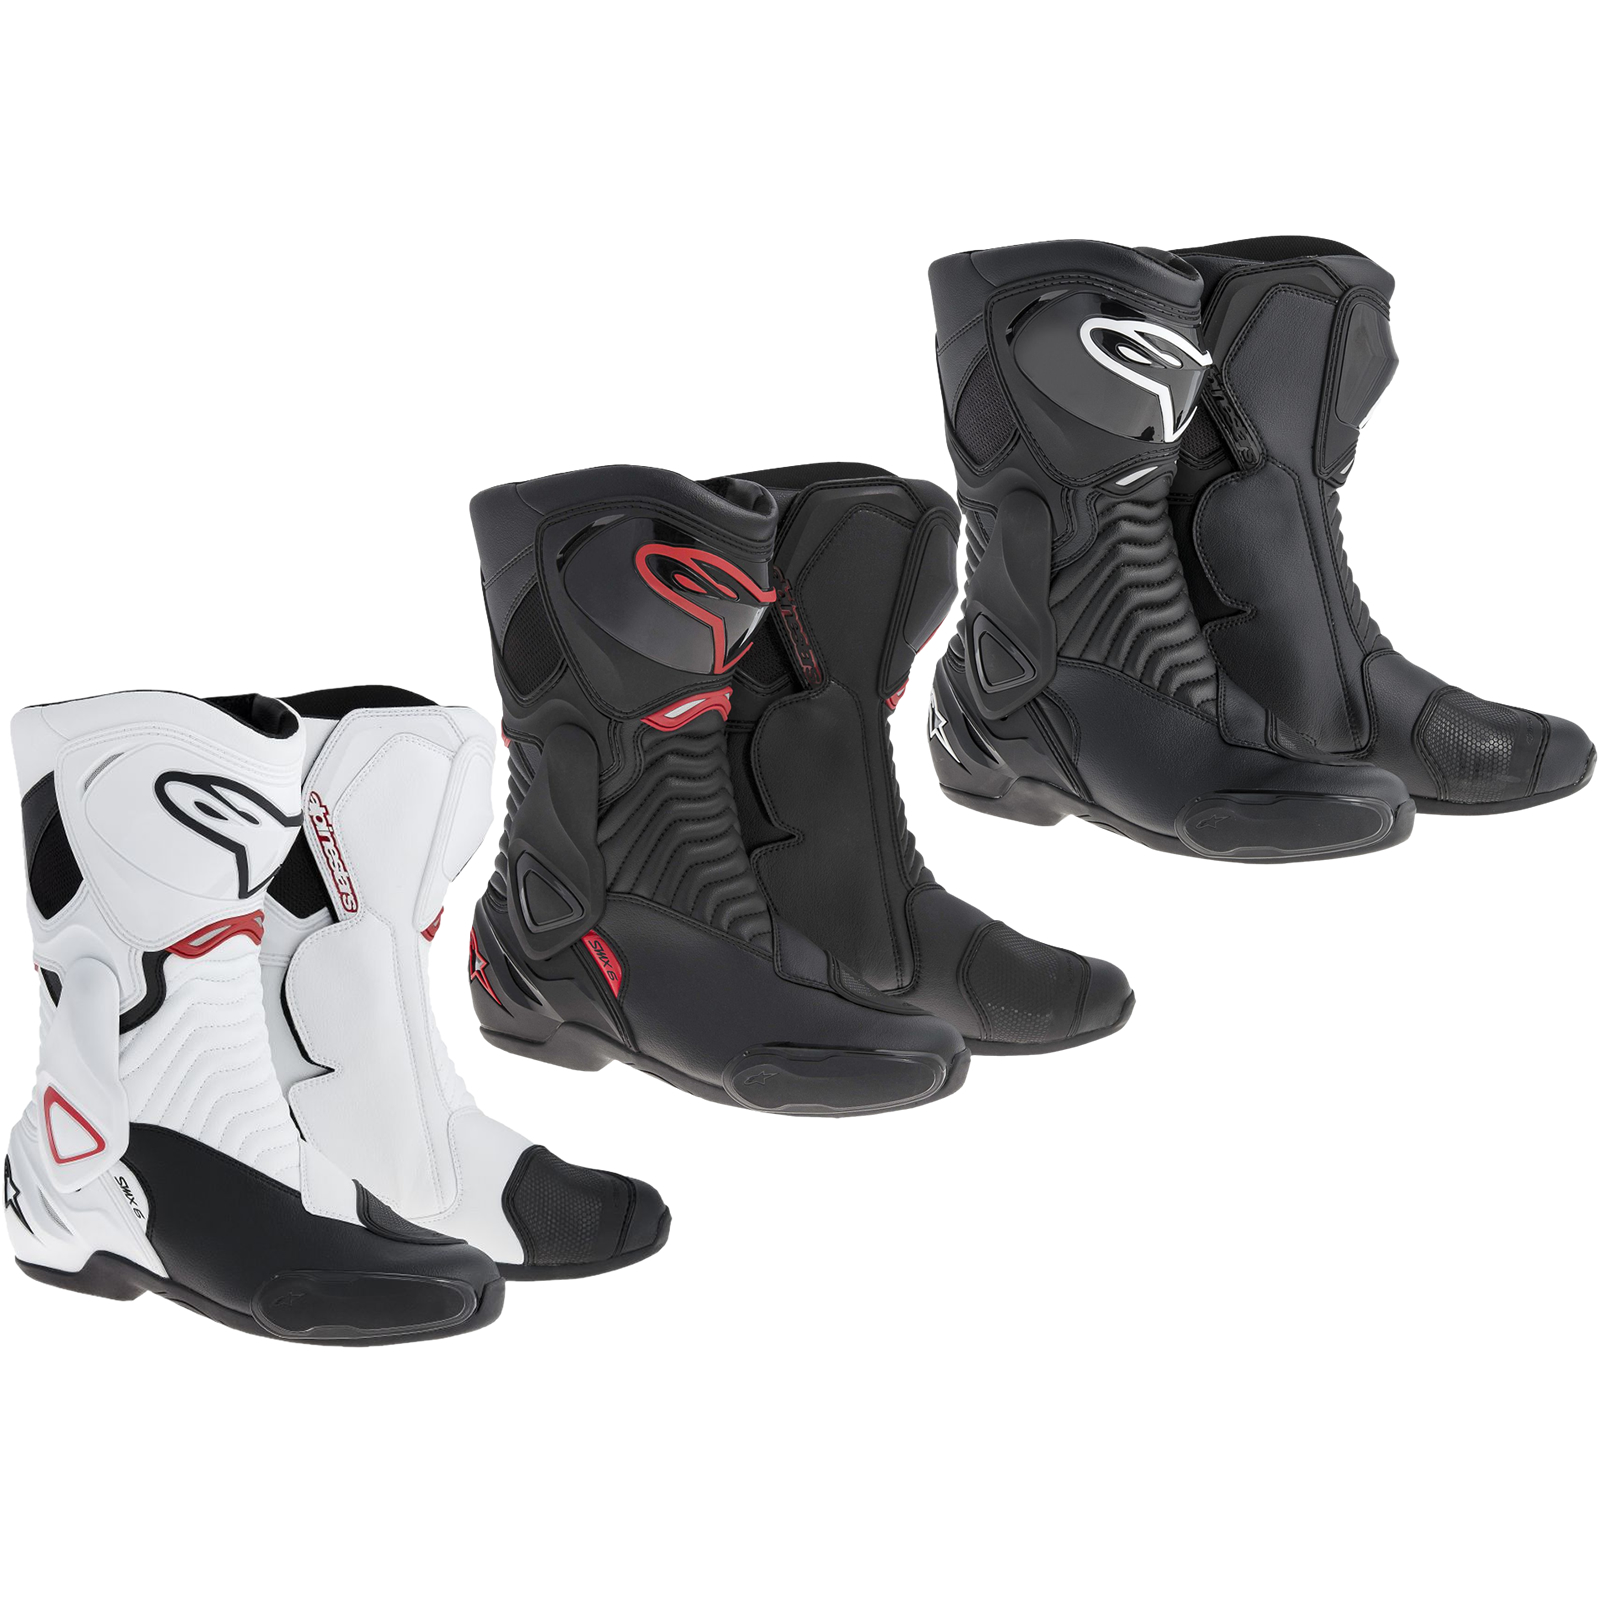 botte moto alpinestars smx six s mx 6 2014 sport course ebay. Black Bedroom Furniture Sets. Home Design Ideas